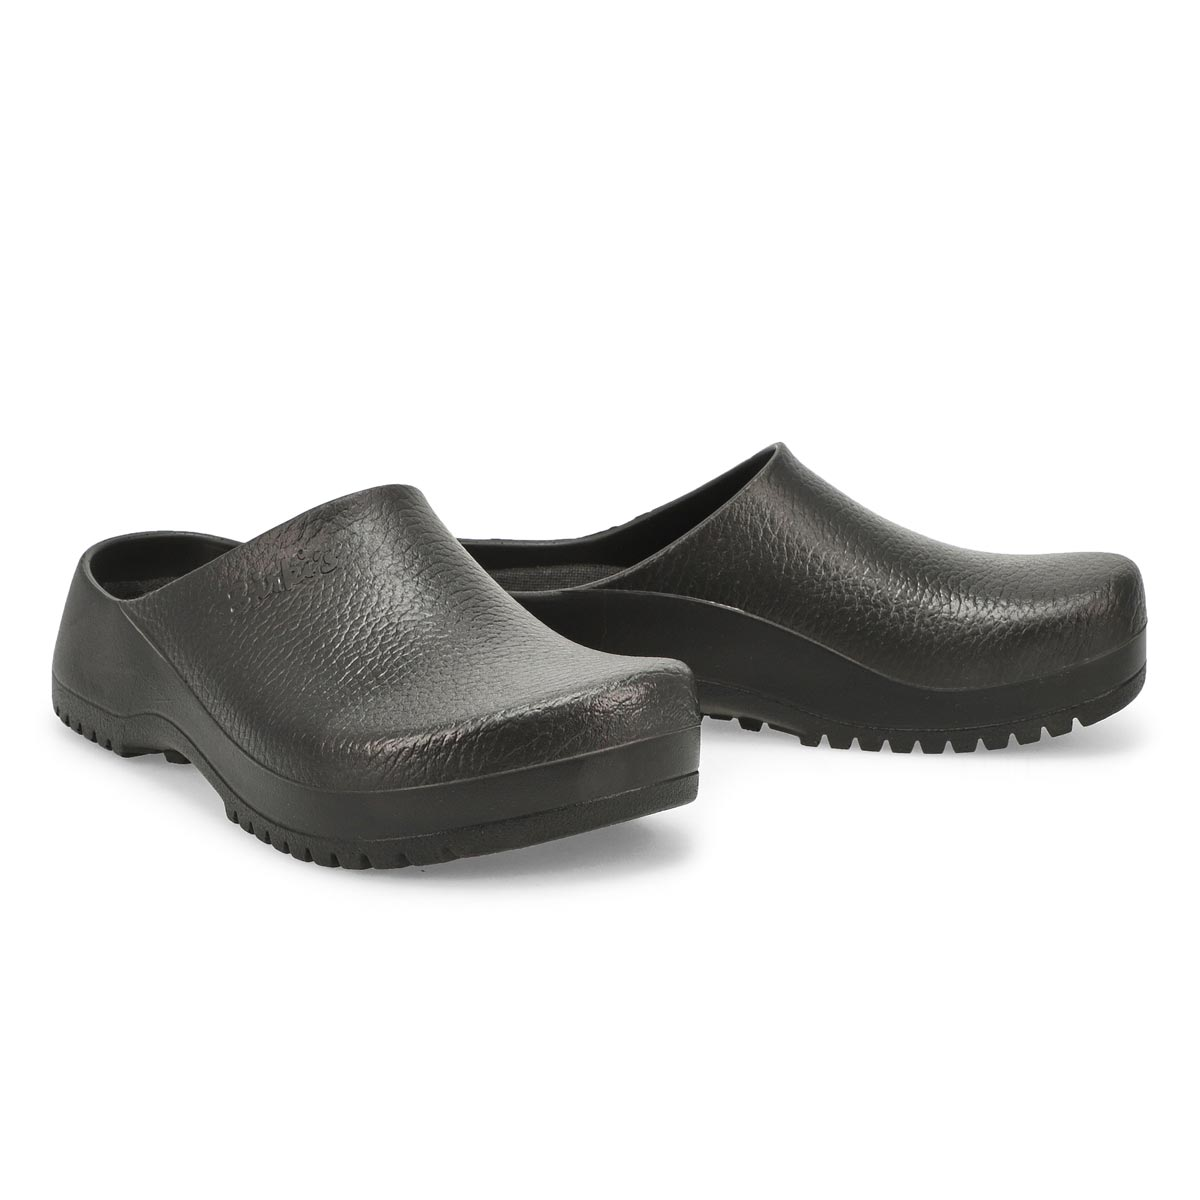 Lds Super Birki black clog